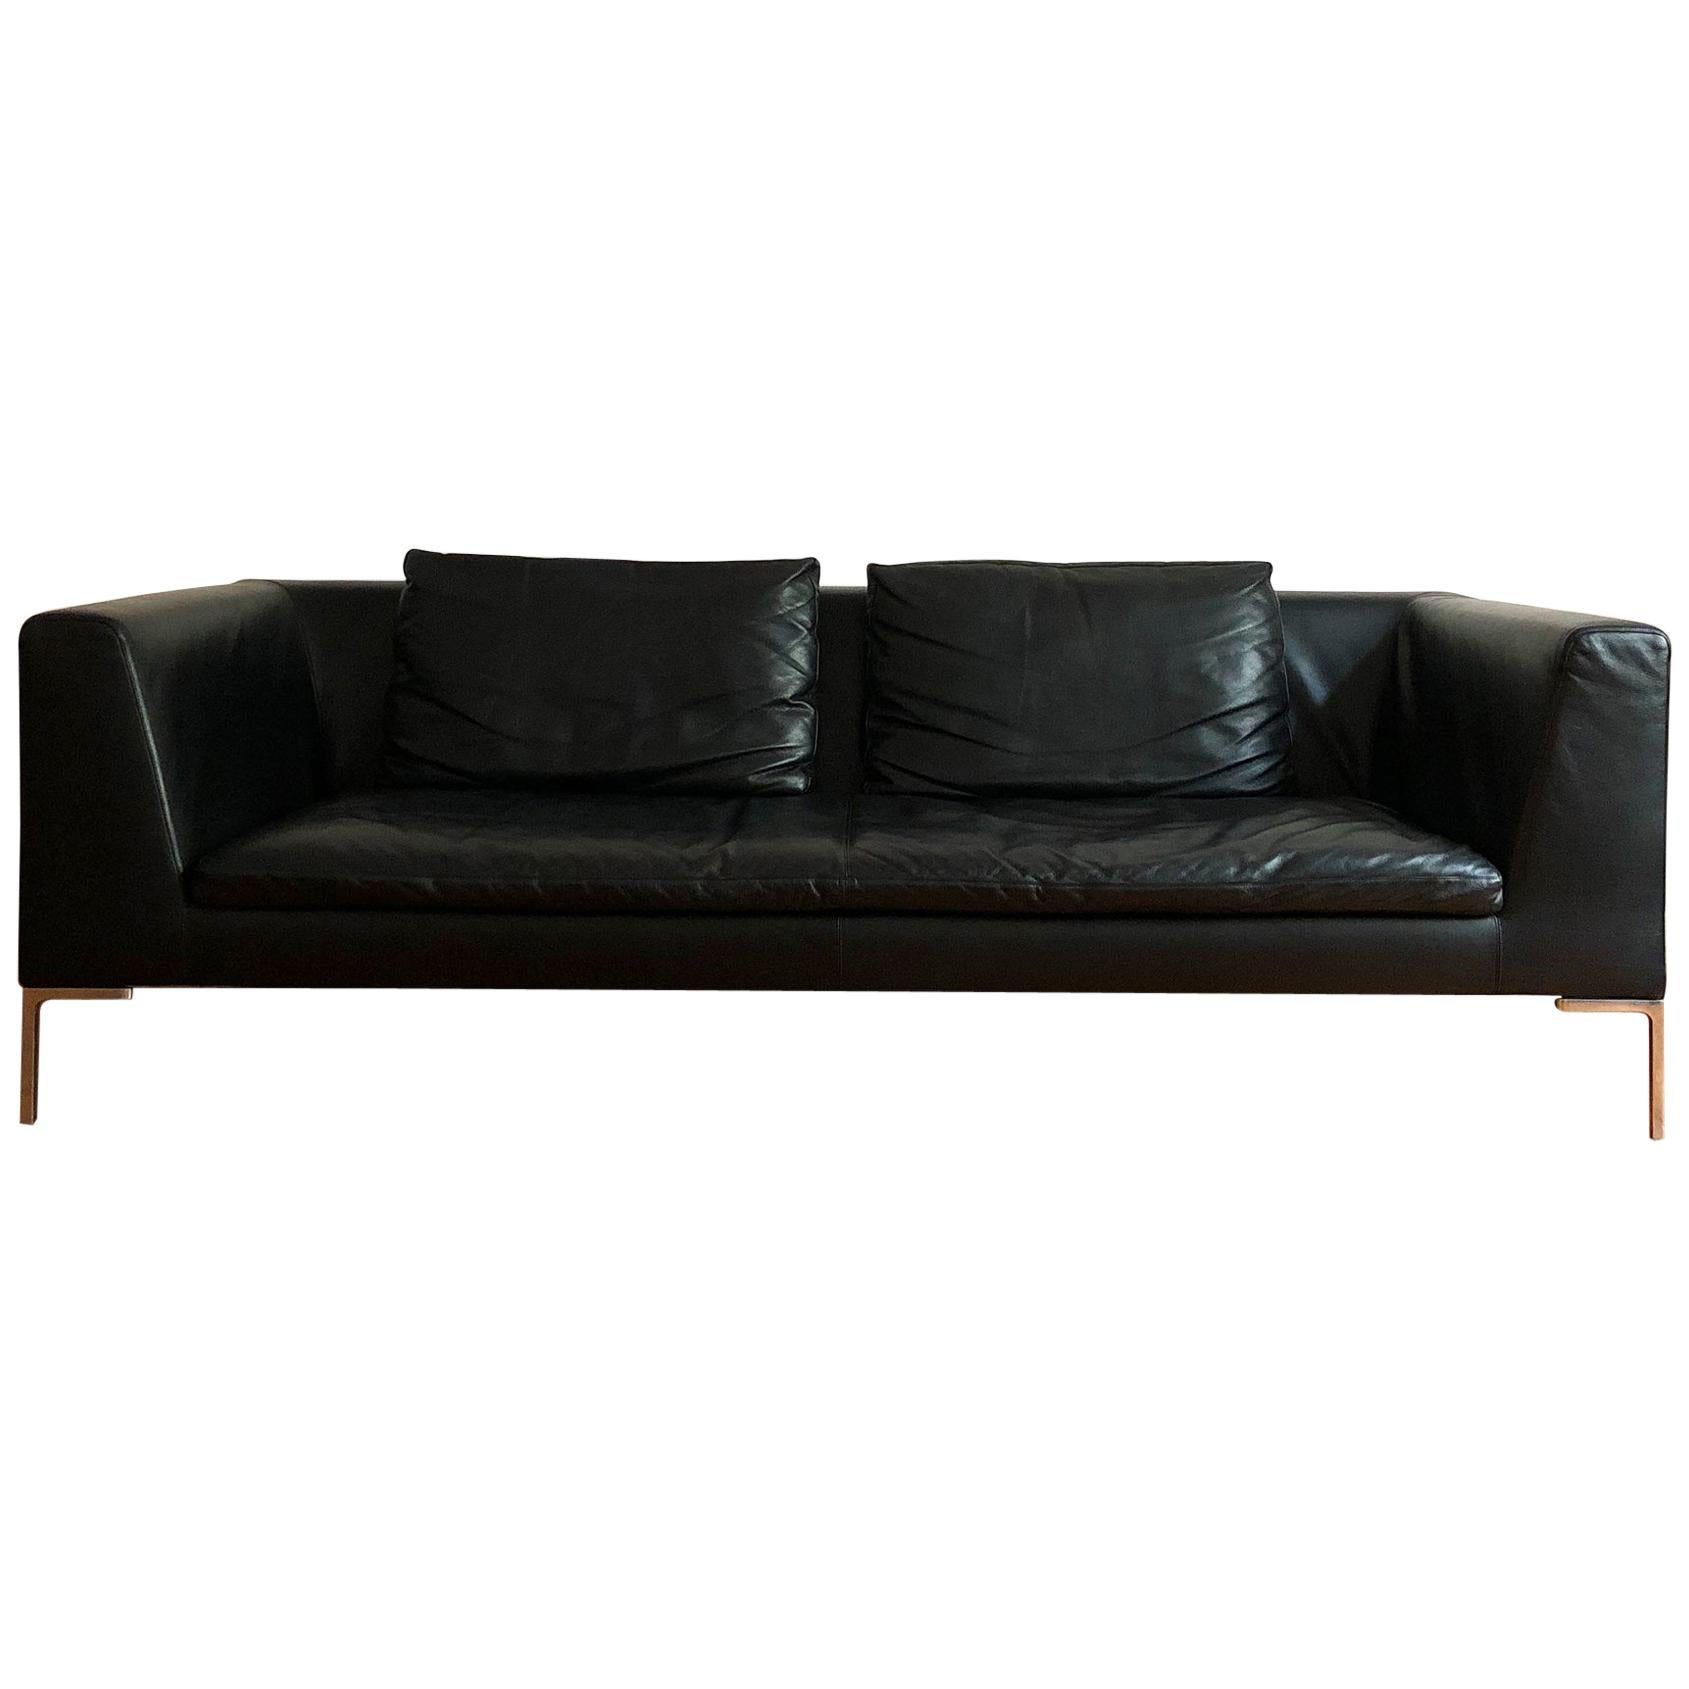 Sofa Mart Sale B B Italia Furniture Chairs Sofas Tables More 156 For Sale